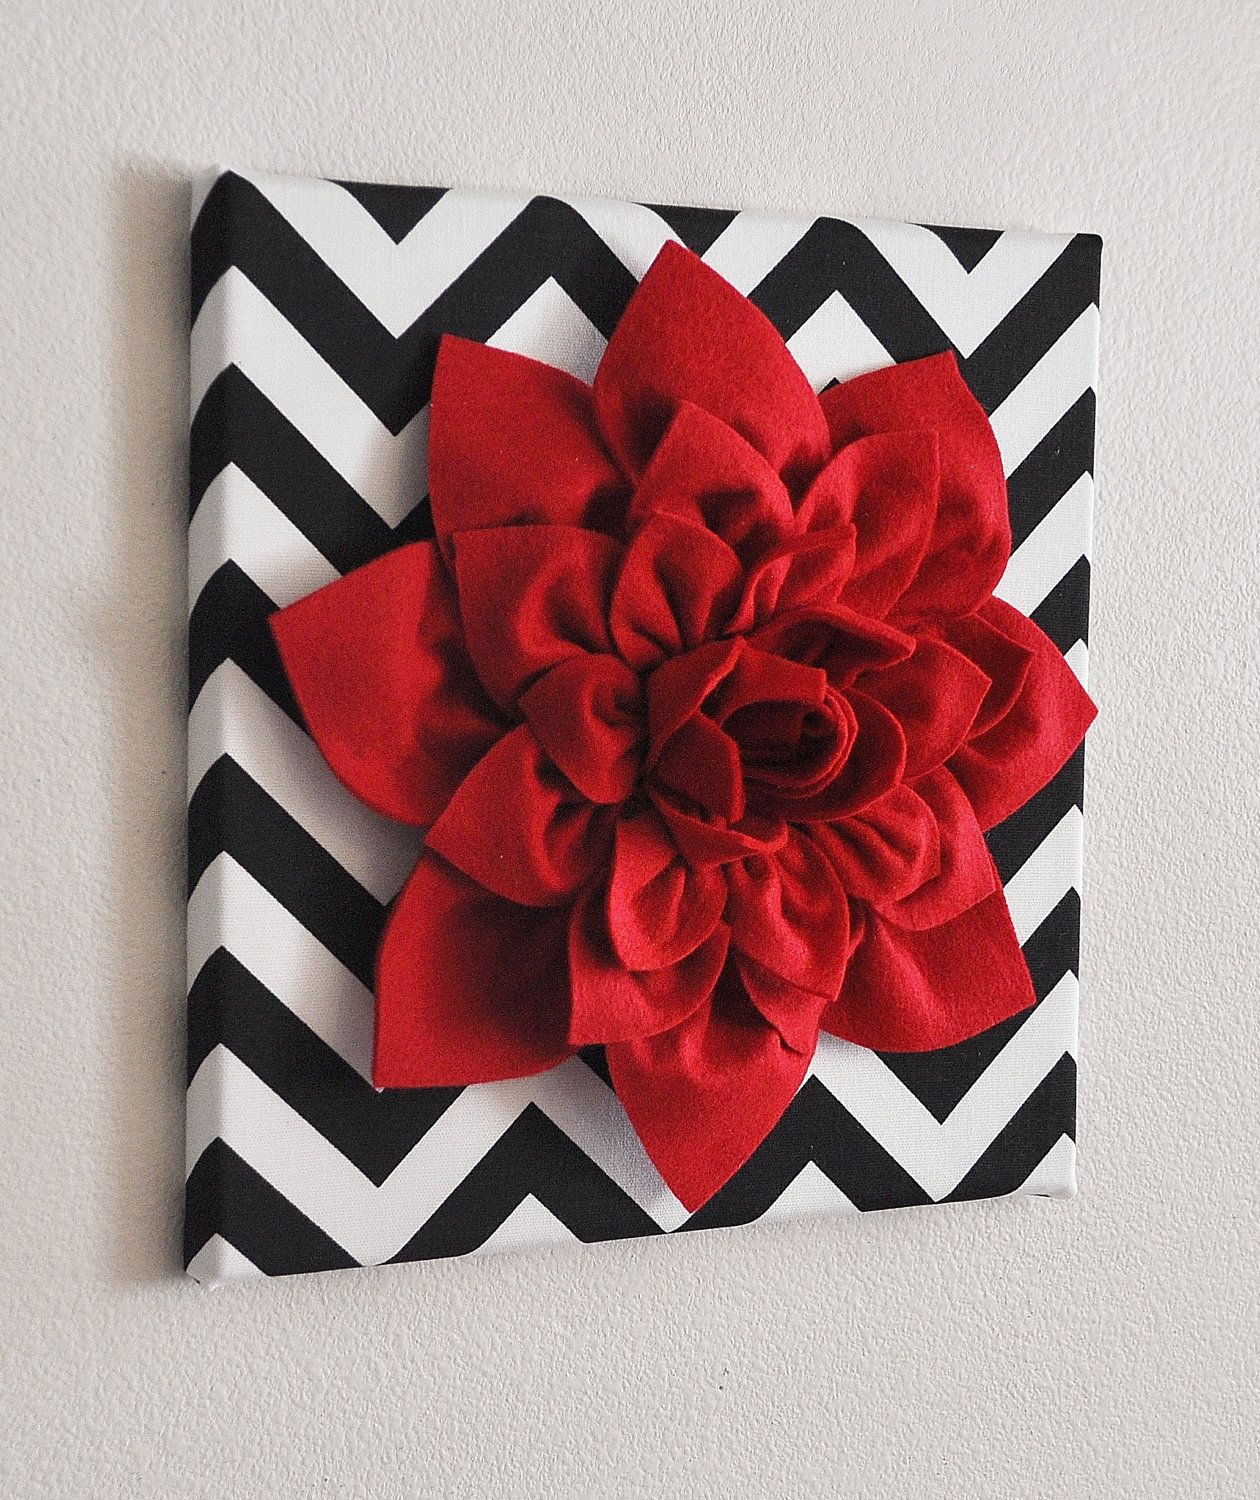 Wall Art Canvas Red : Red wall flower dahlia on black and white chevron